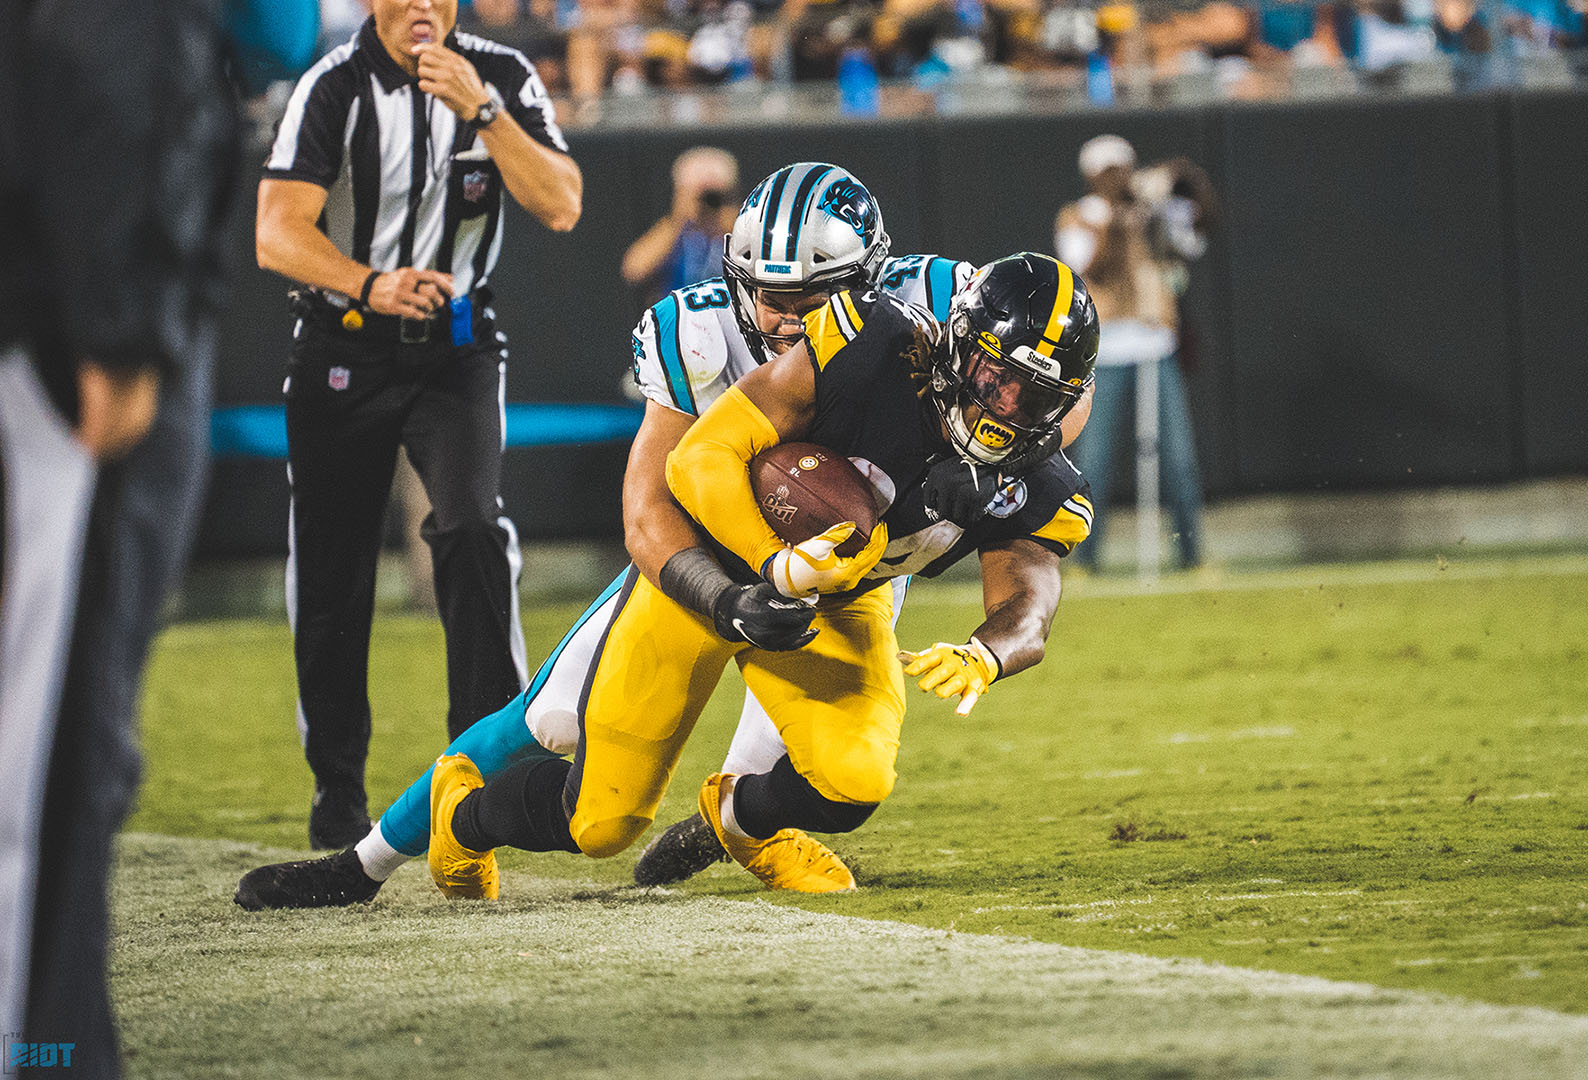 Why The Panthers Kept UDFA Jordan Kunaszyk On The Roster